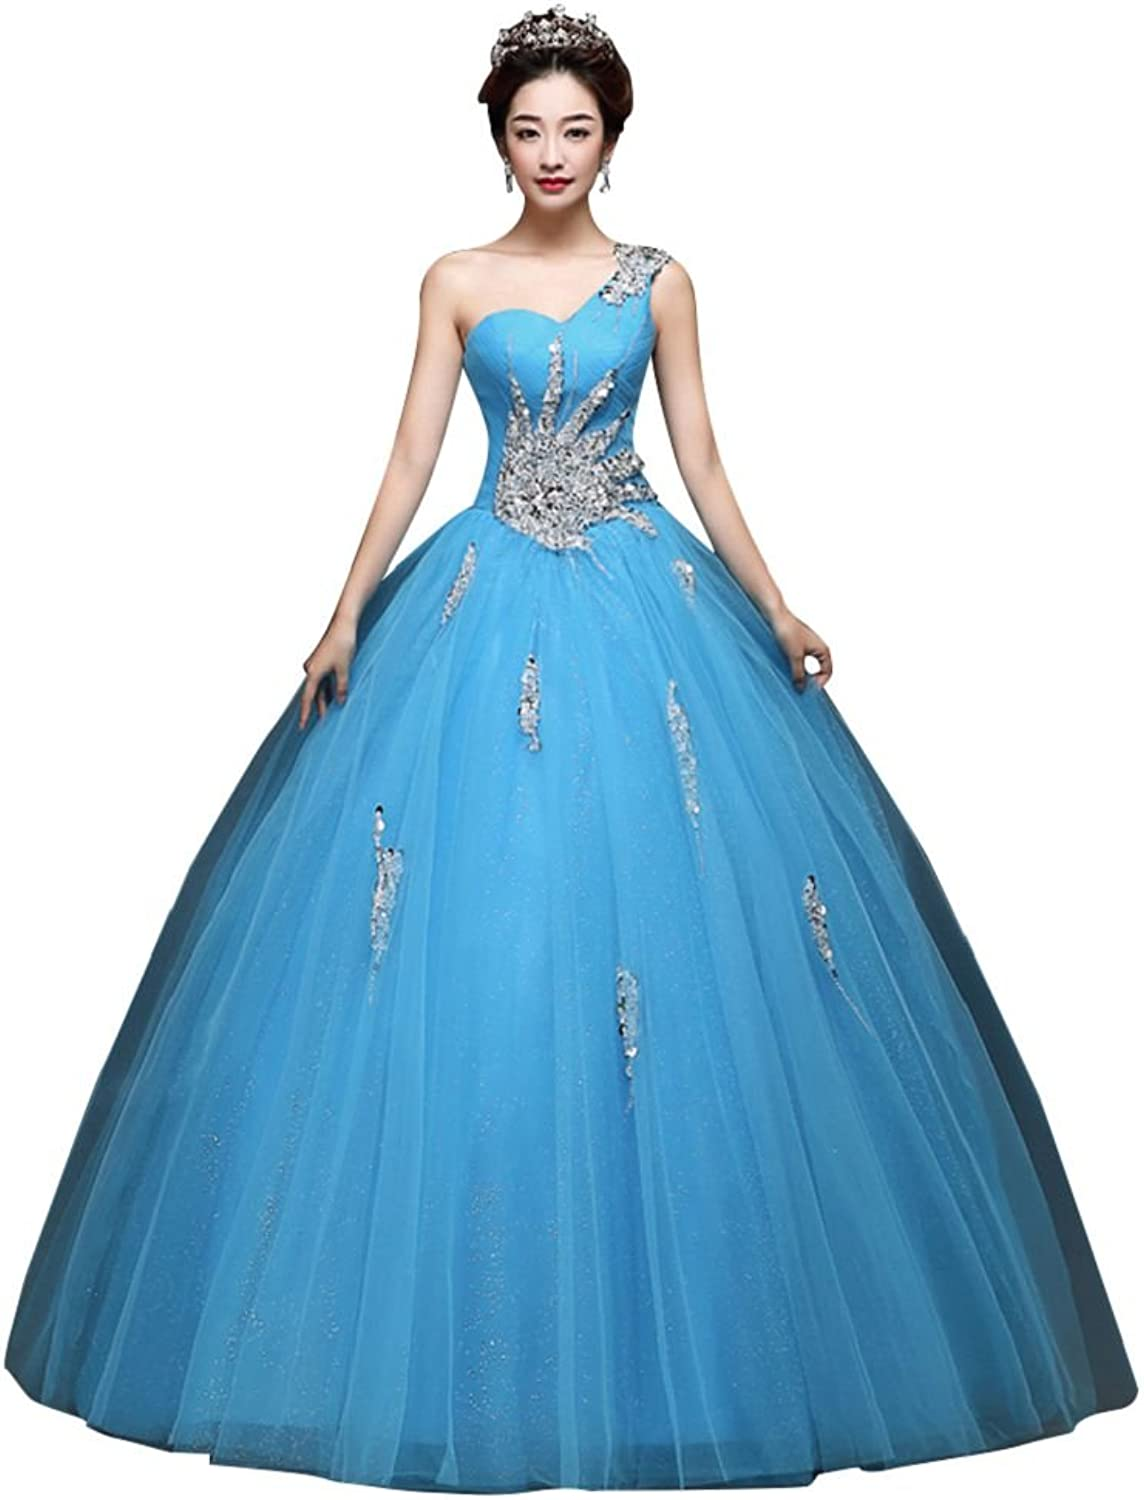 BeautyEmily One Shoulder Ball Gown Beads Sweet Quinceanera Dresses